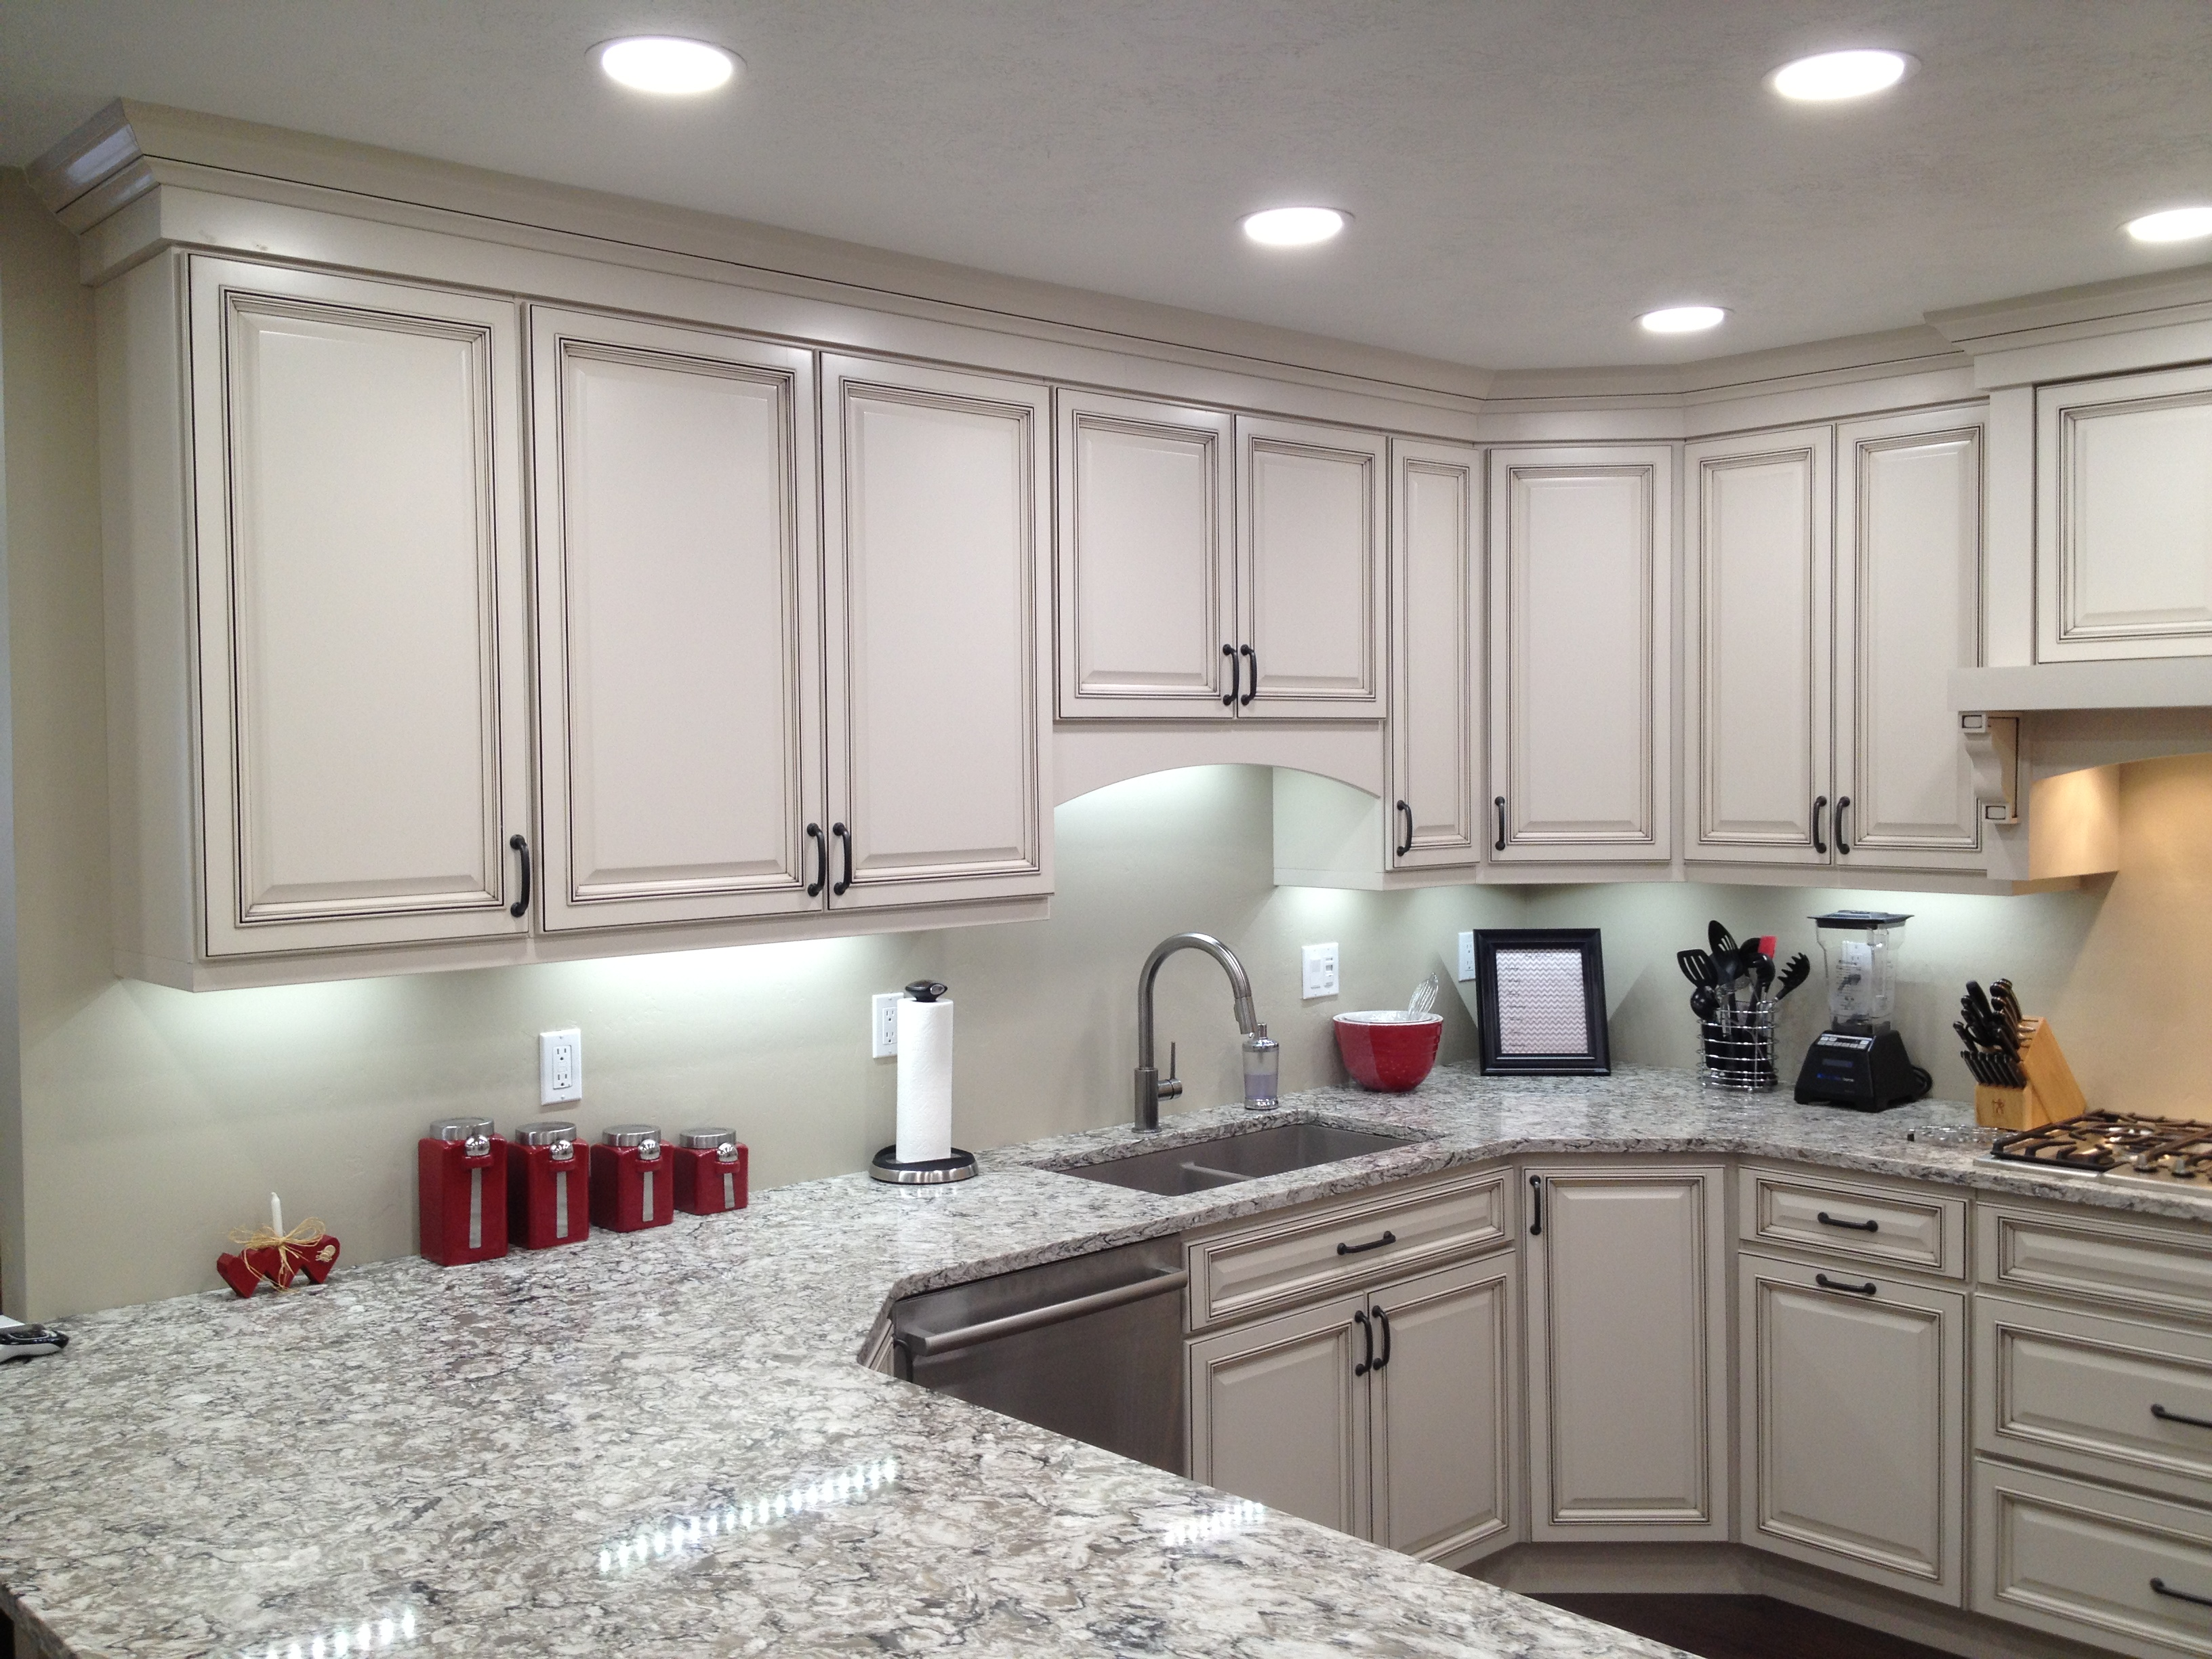 Under Counter Lighting Kitchen Wireless Led Under Cabinet Lighting Illumra